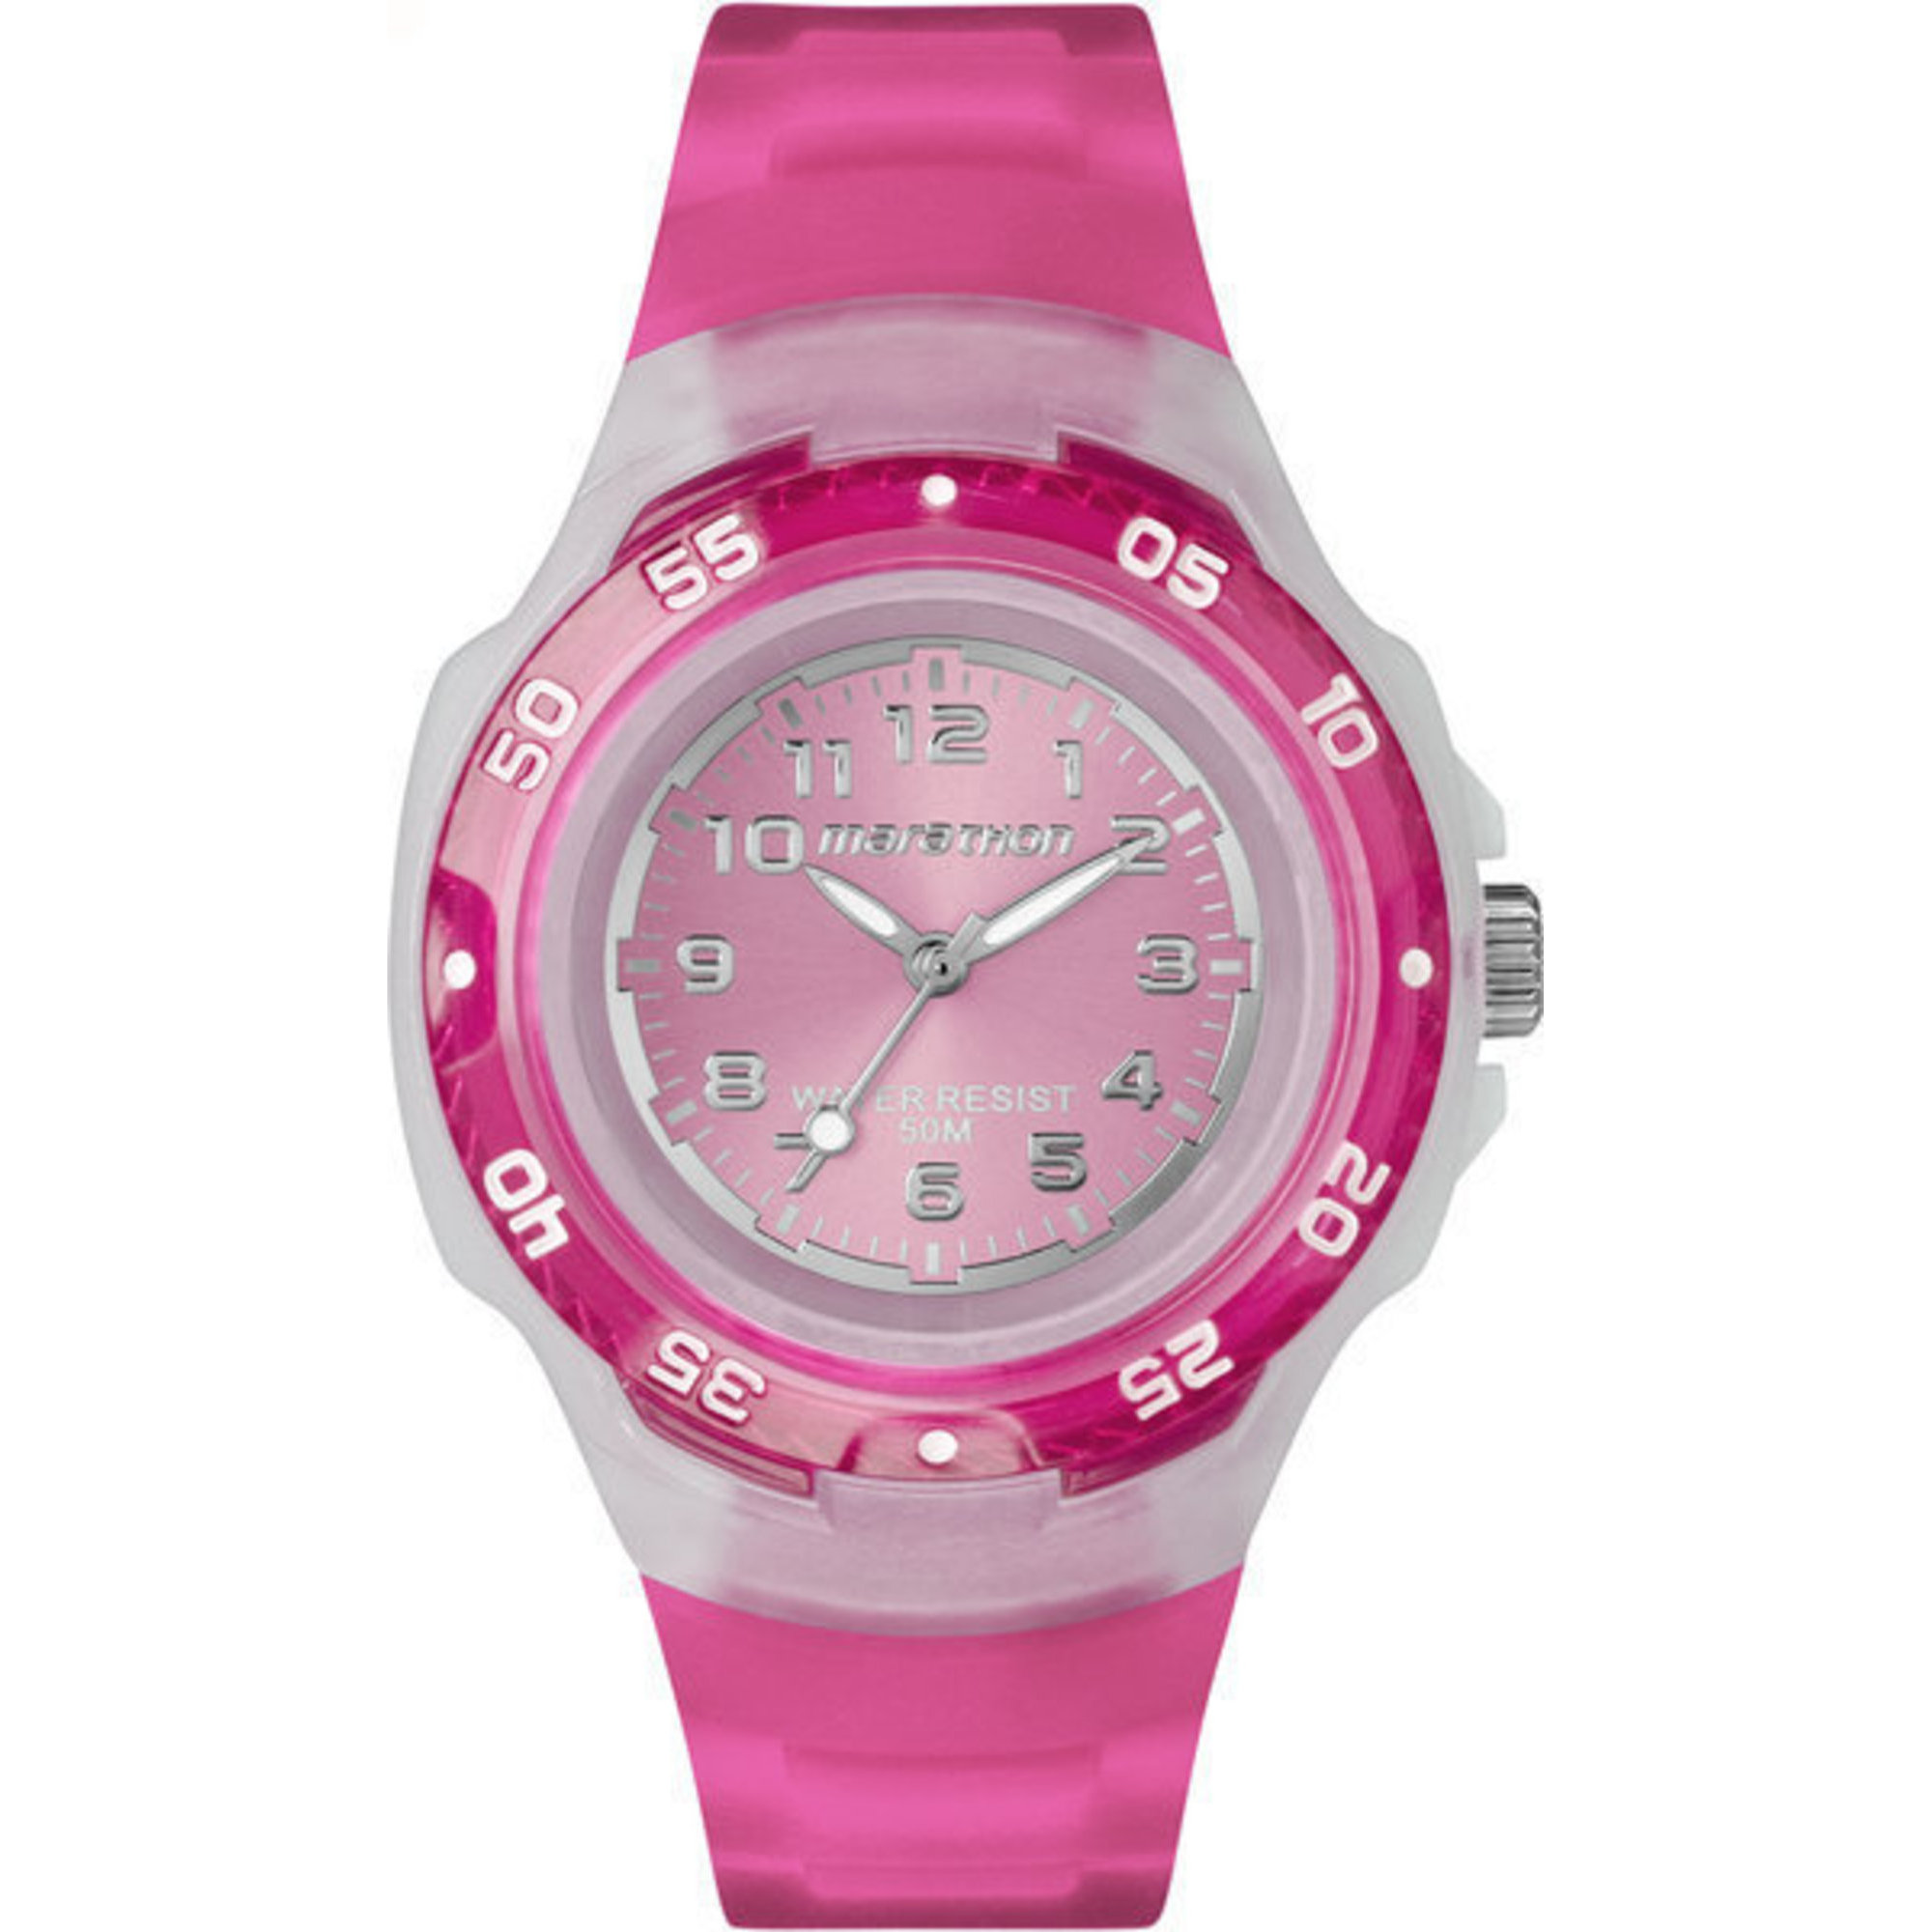 pink nordstrom shop rack women silicone womens watch ipswich product s of watches image adidas